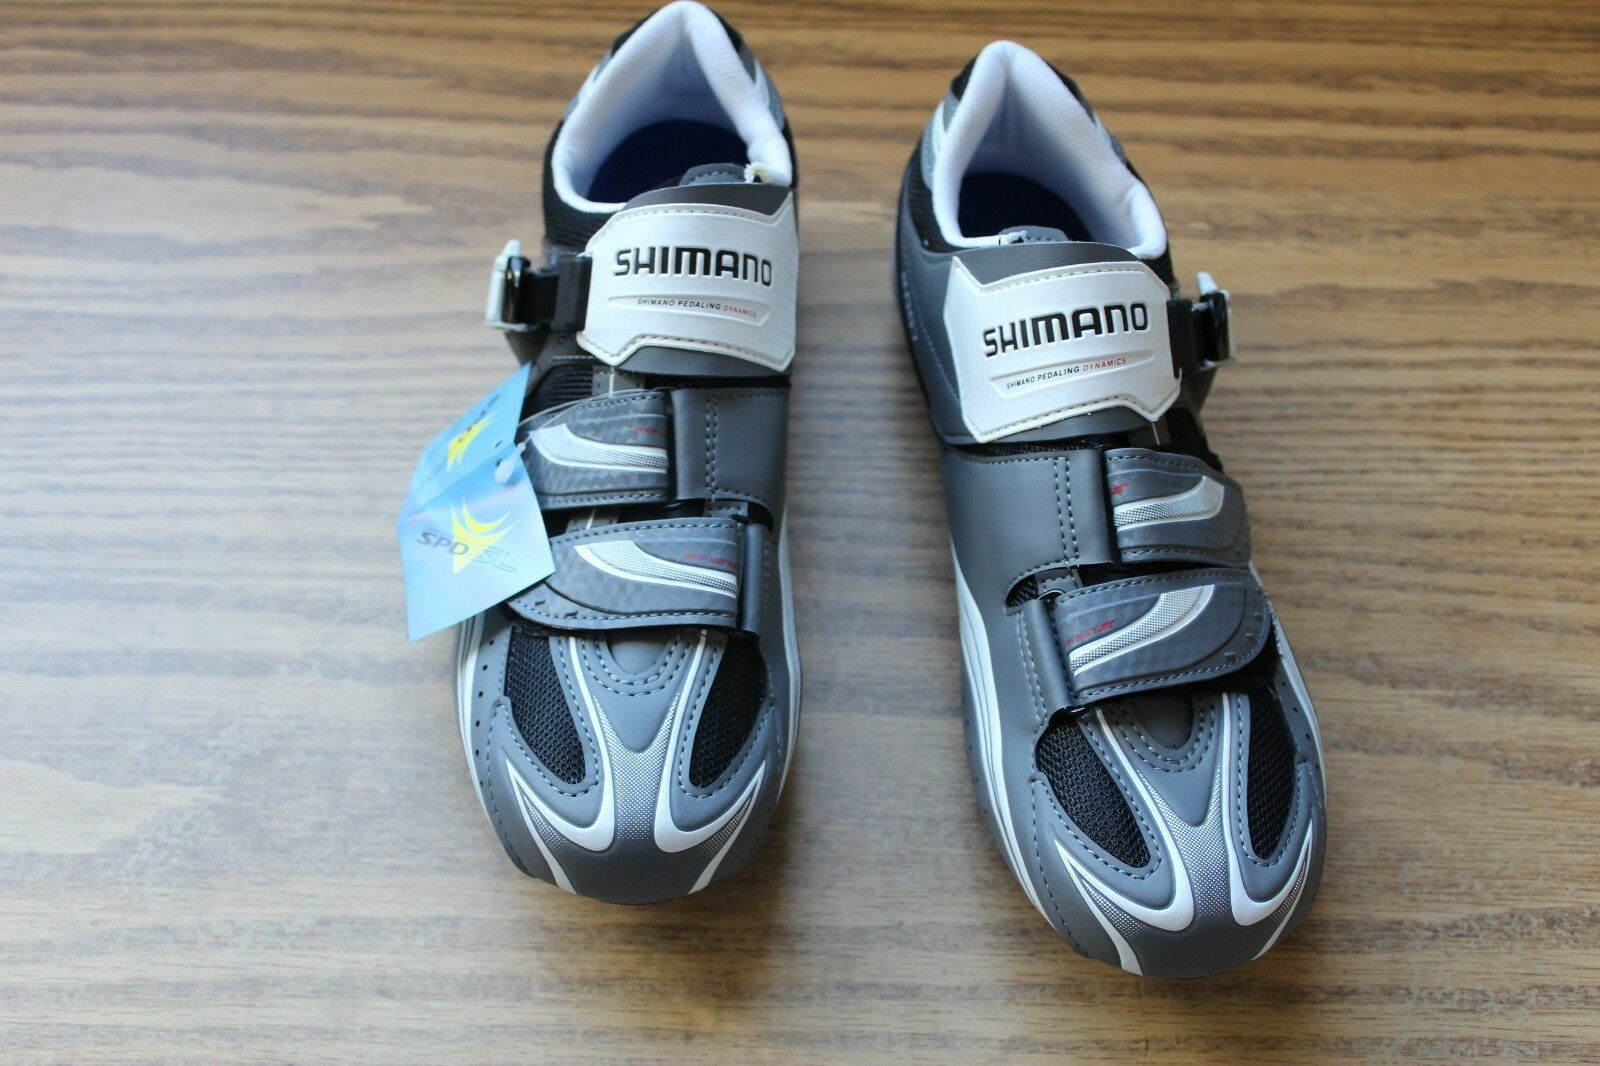 Clipless Road Bike shoes Shimano SH-R087G Recreation Fitness  SPD-SL 3-Bolt New  credit guarantee